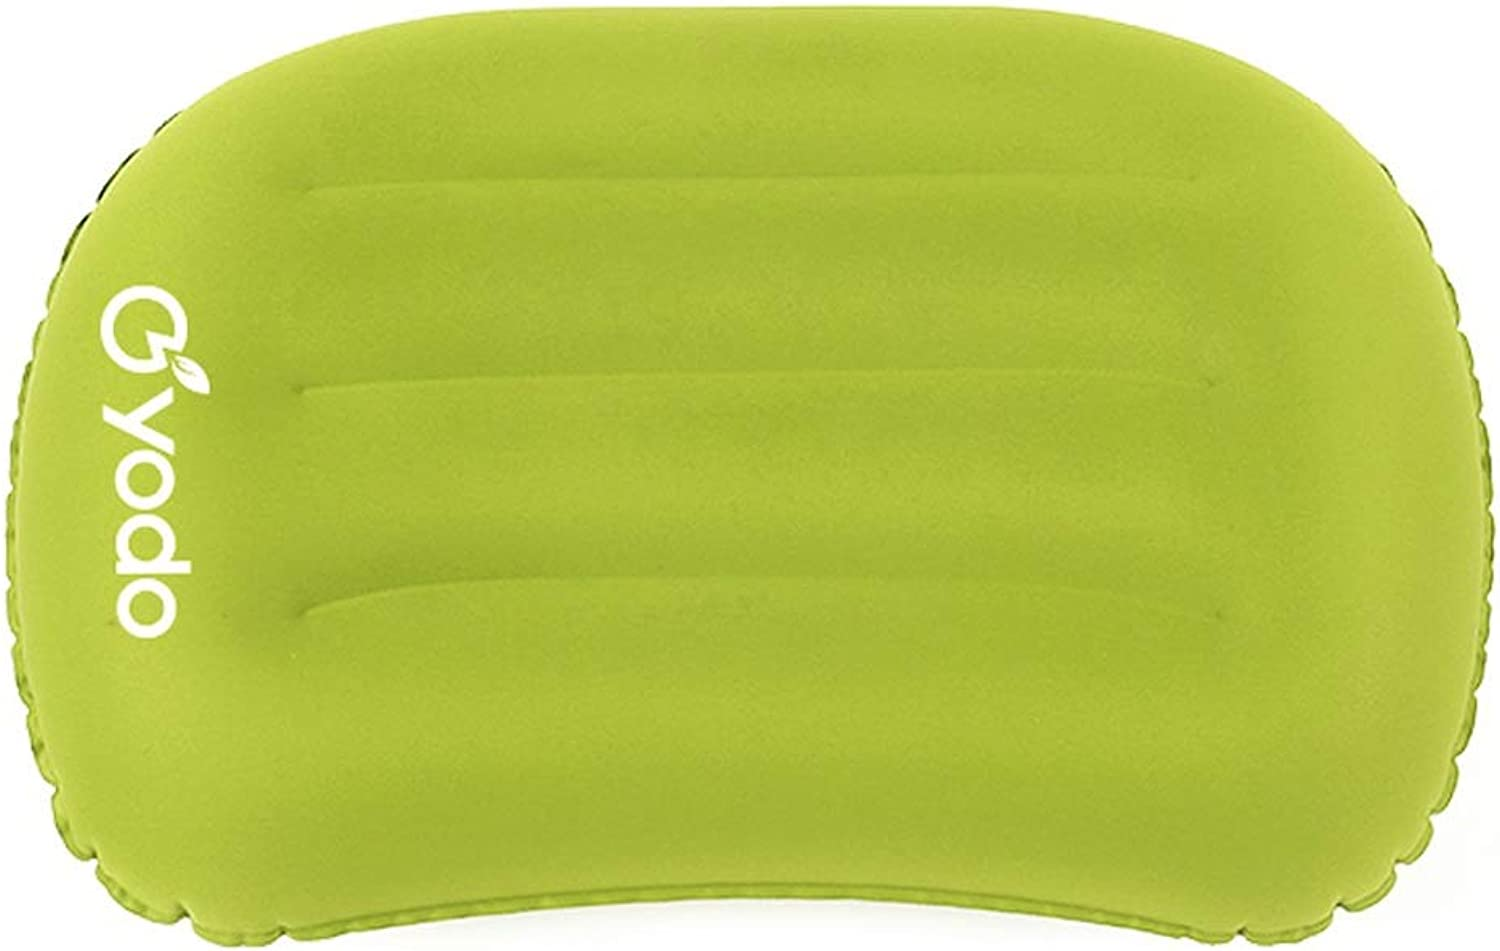 Inflatable Camping Pillow, Soft Fabric Ergonomic Design with Storage Bag Portable for Backpacking Hiking Camping Traveling (color   Green)